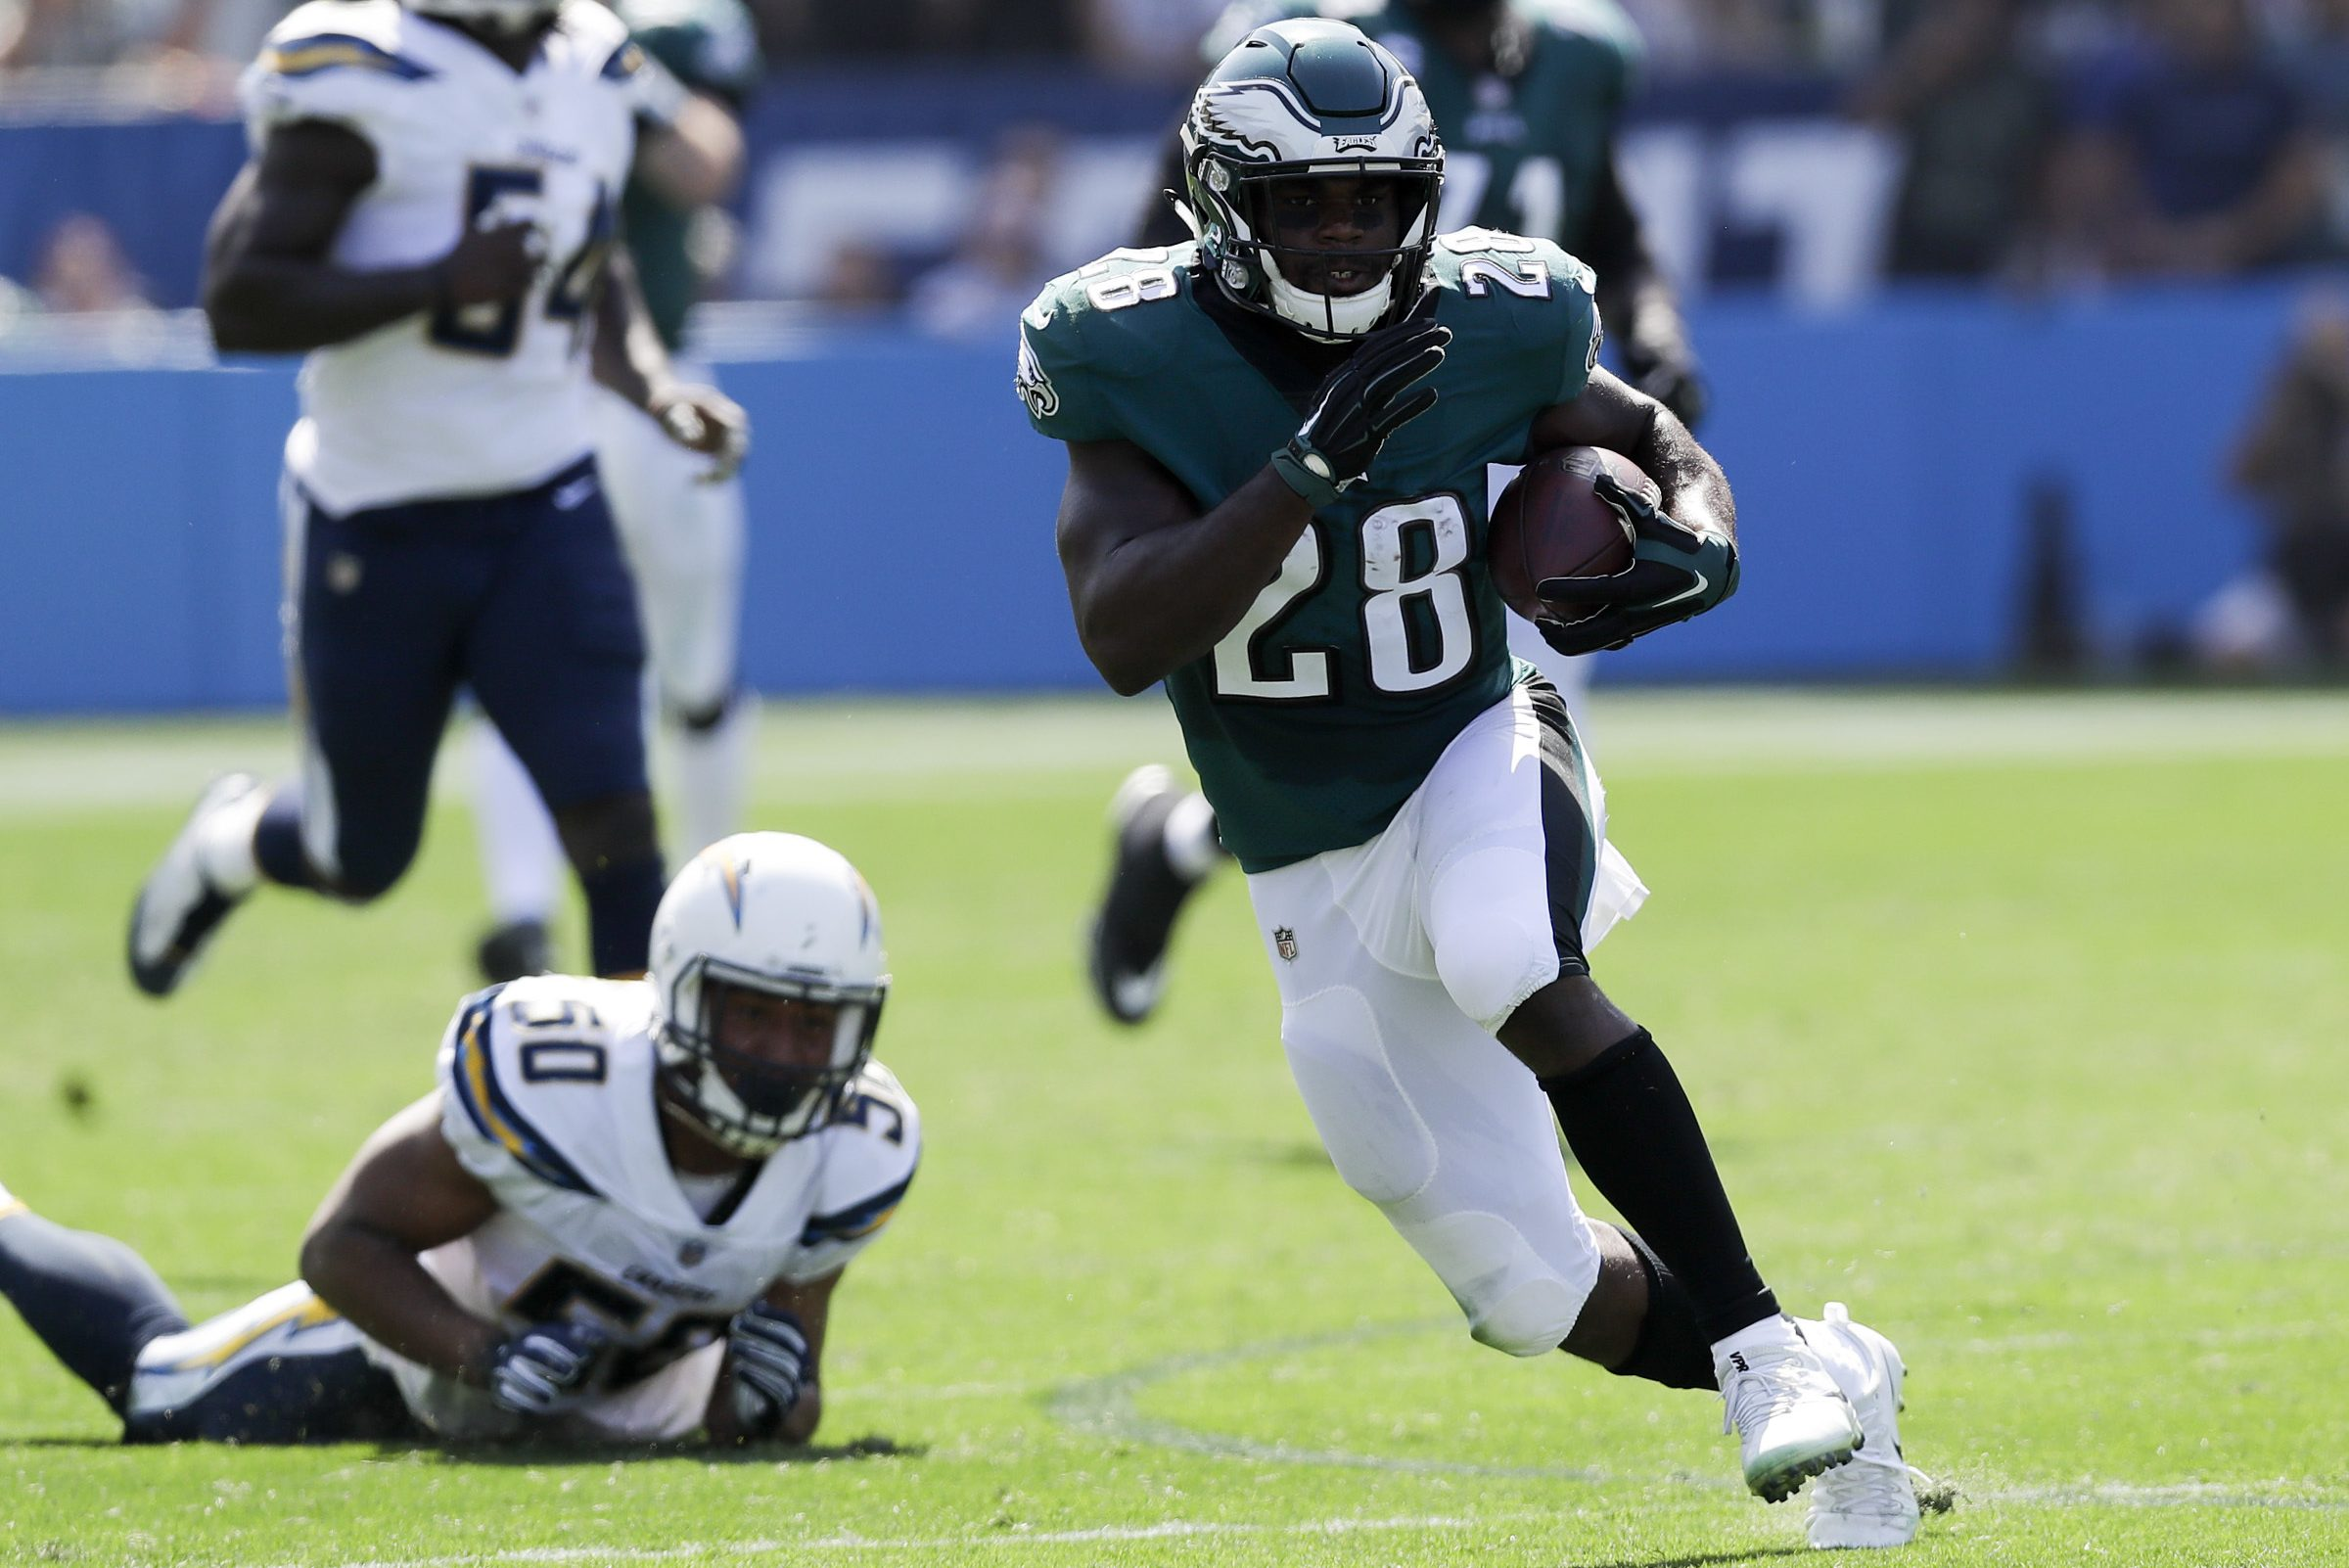 Running back Wendell Smallwood is capitalizing on his increased opportunities.